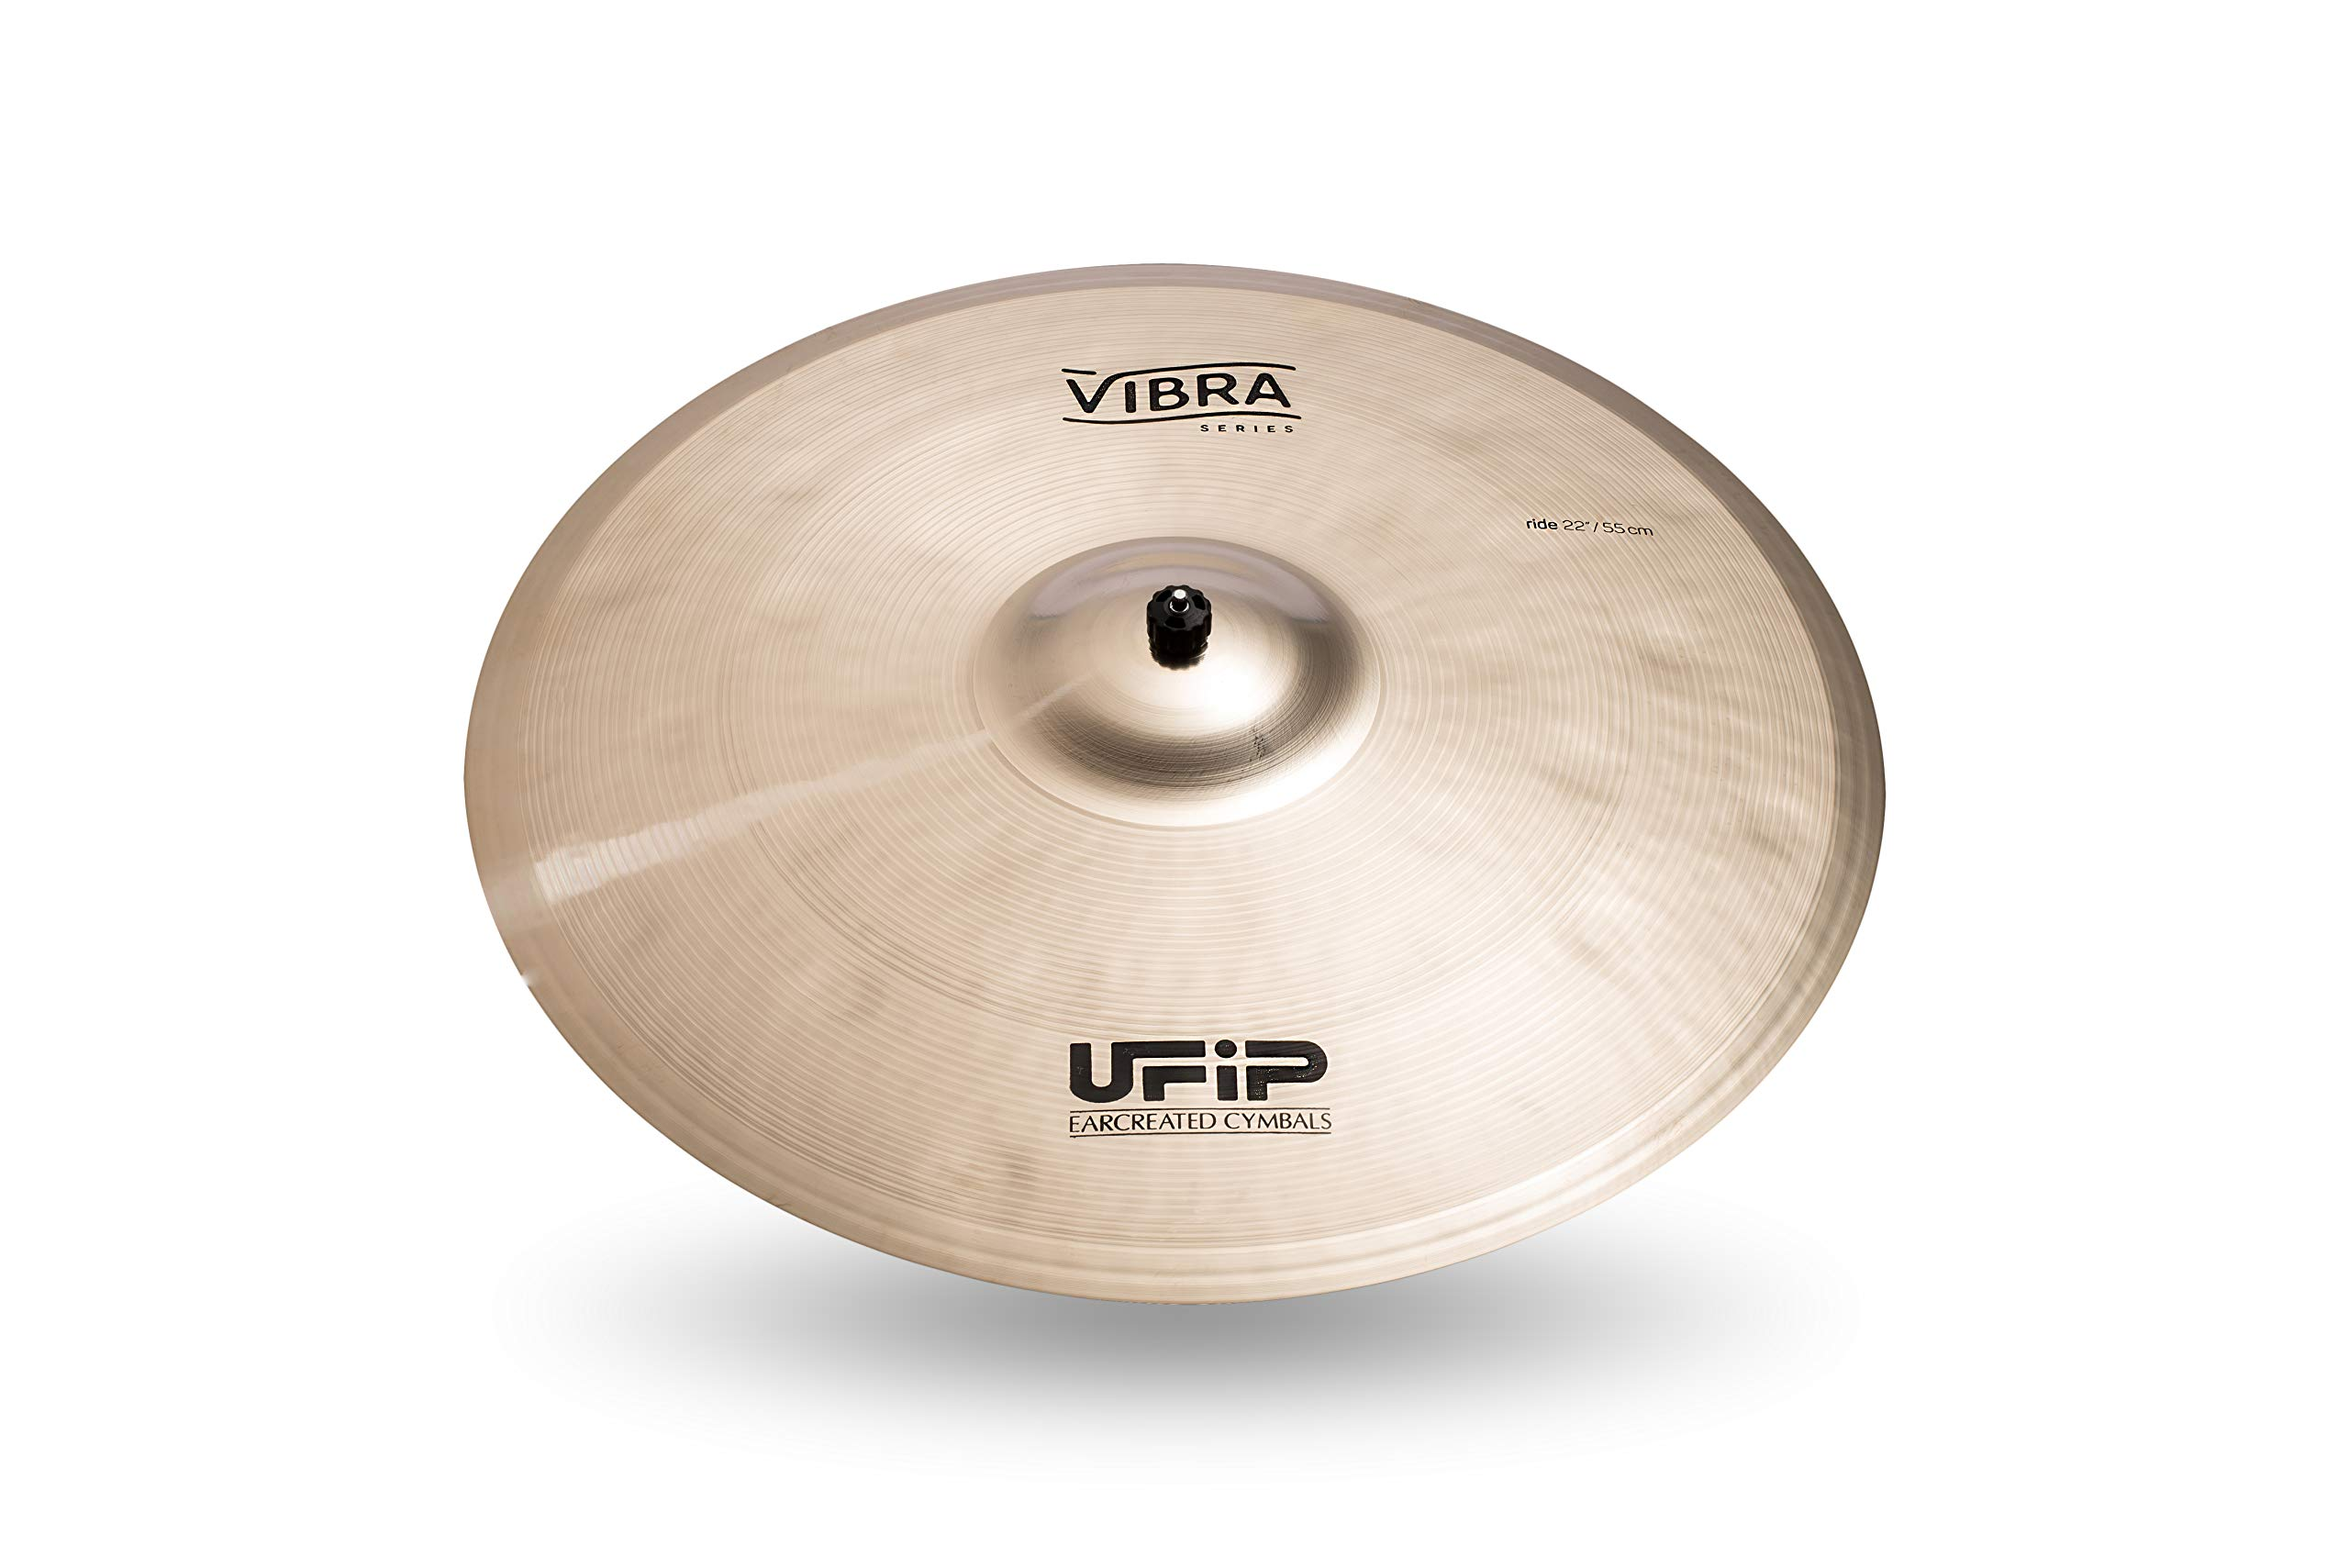 Ufip Cymbals Vibra Series 22 inches Ride Cymbal 22'' VB-22R